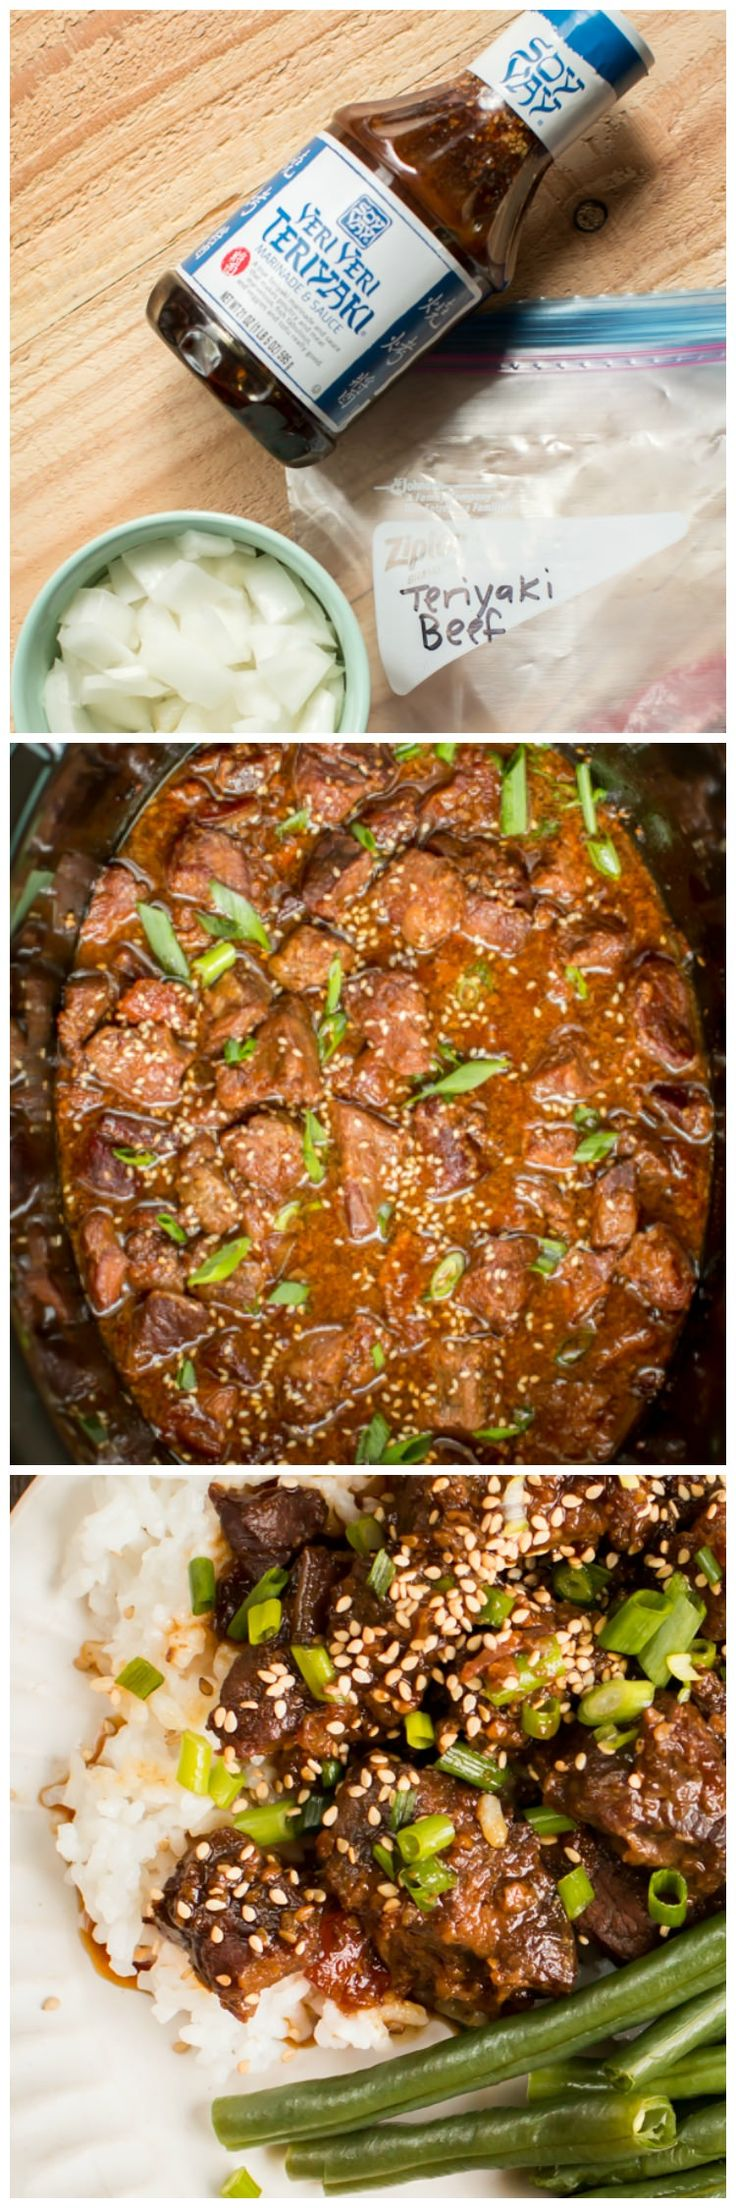 Slow Cooker Teriyaki Beef. Only 3 ingredients to get this meal started in the slow cooker! Can be made into a freezer meal! (Slow Cooker Recipes Freezer)